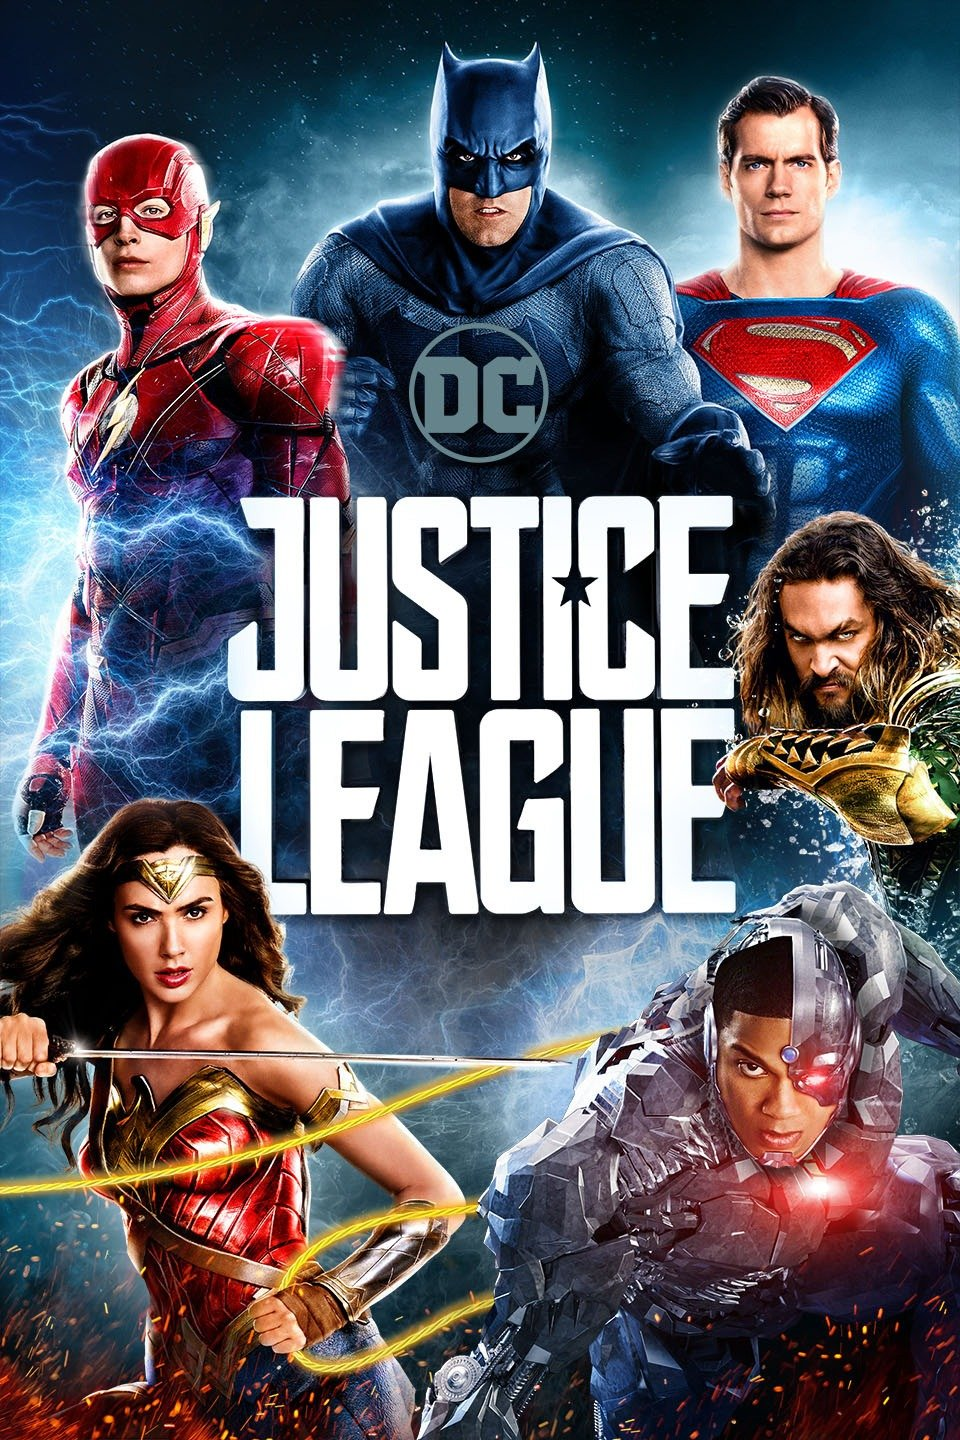 Justice League poster art